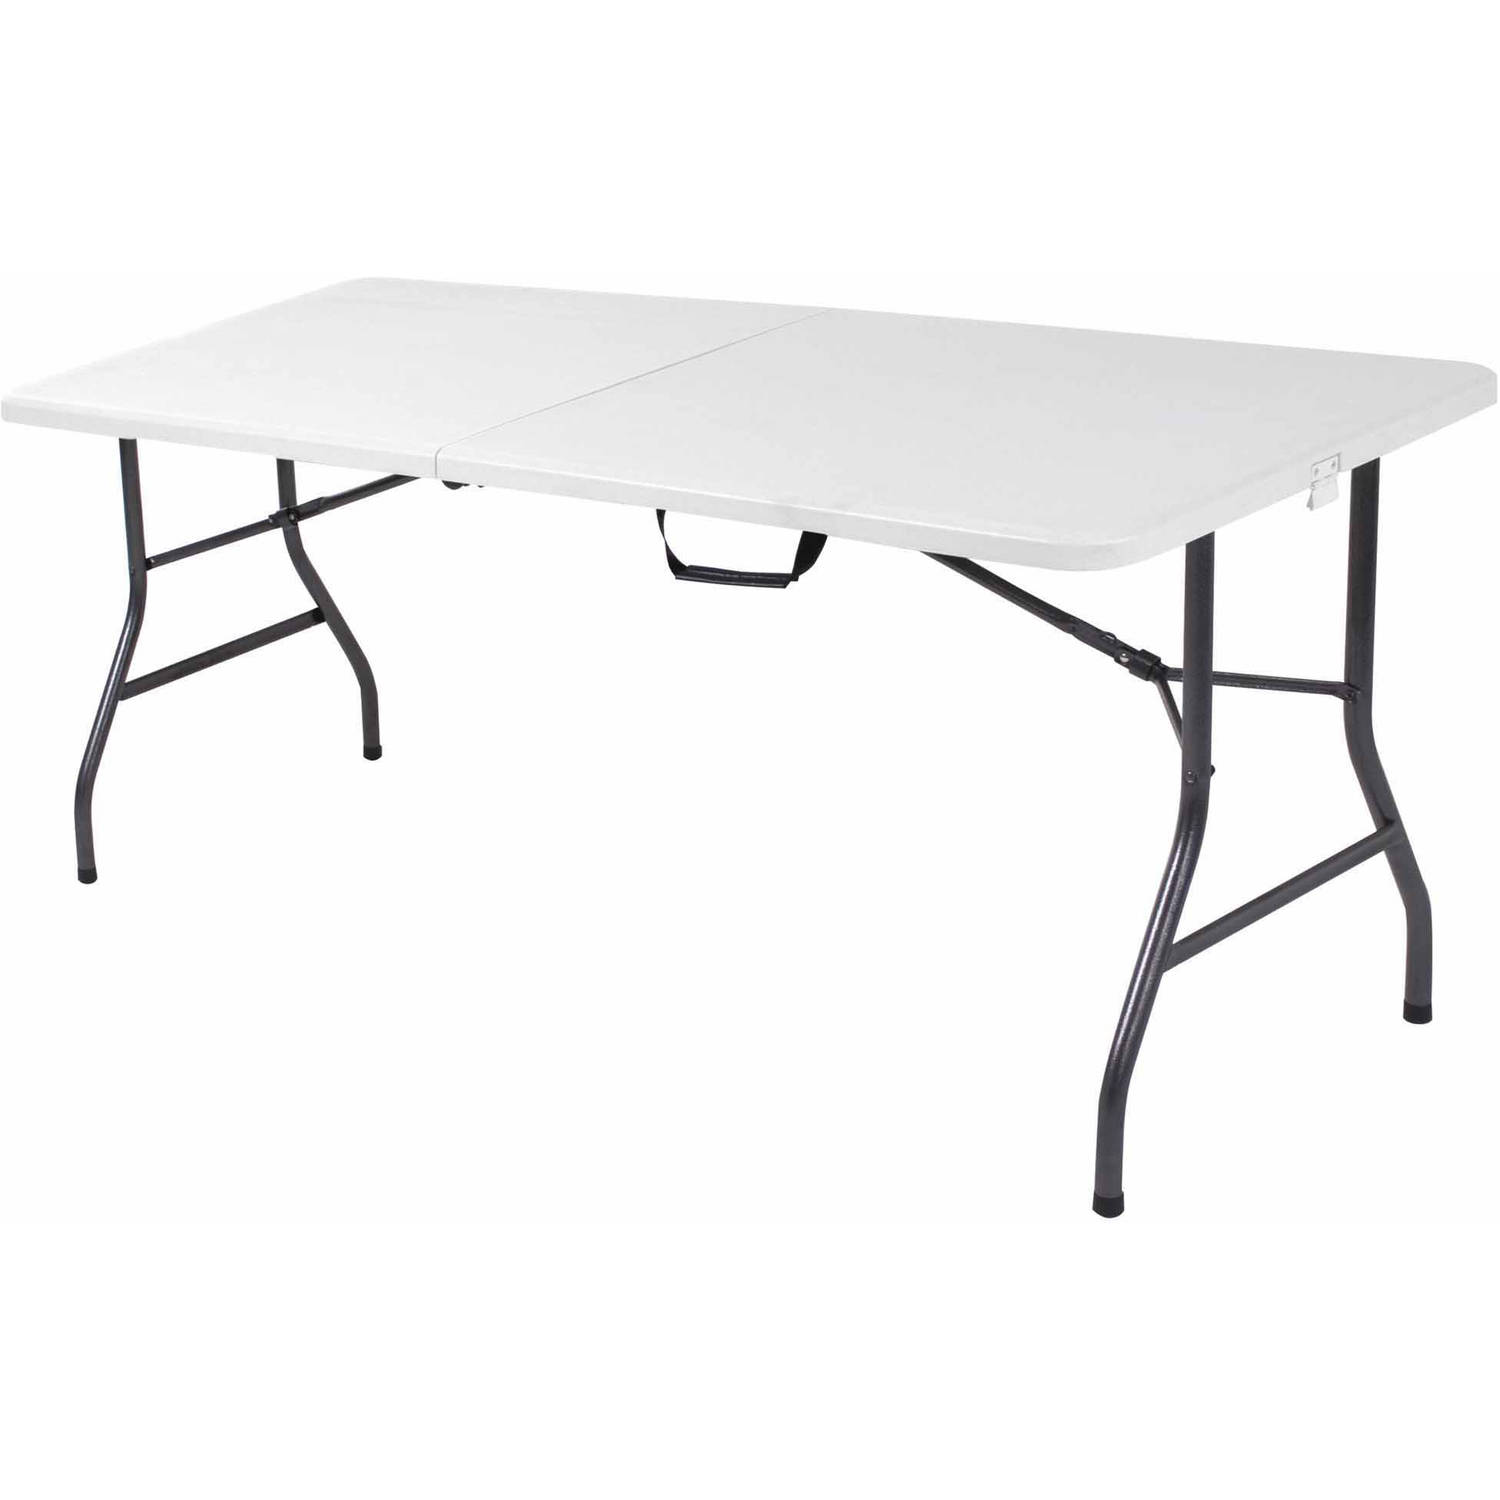 Cosco Folding Tables & Chairs